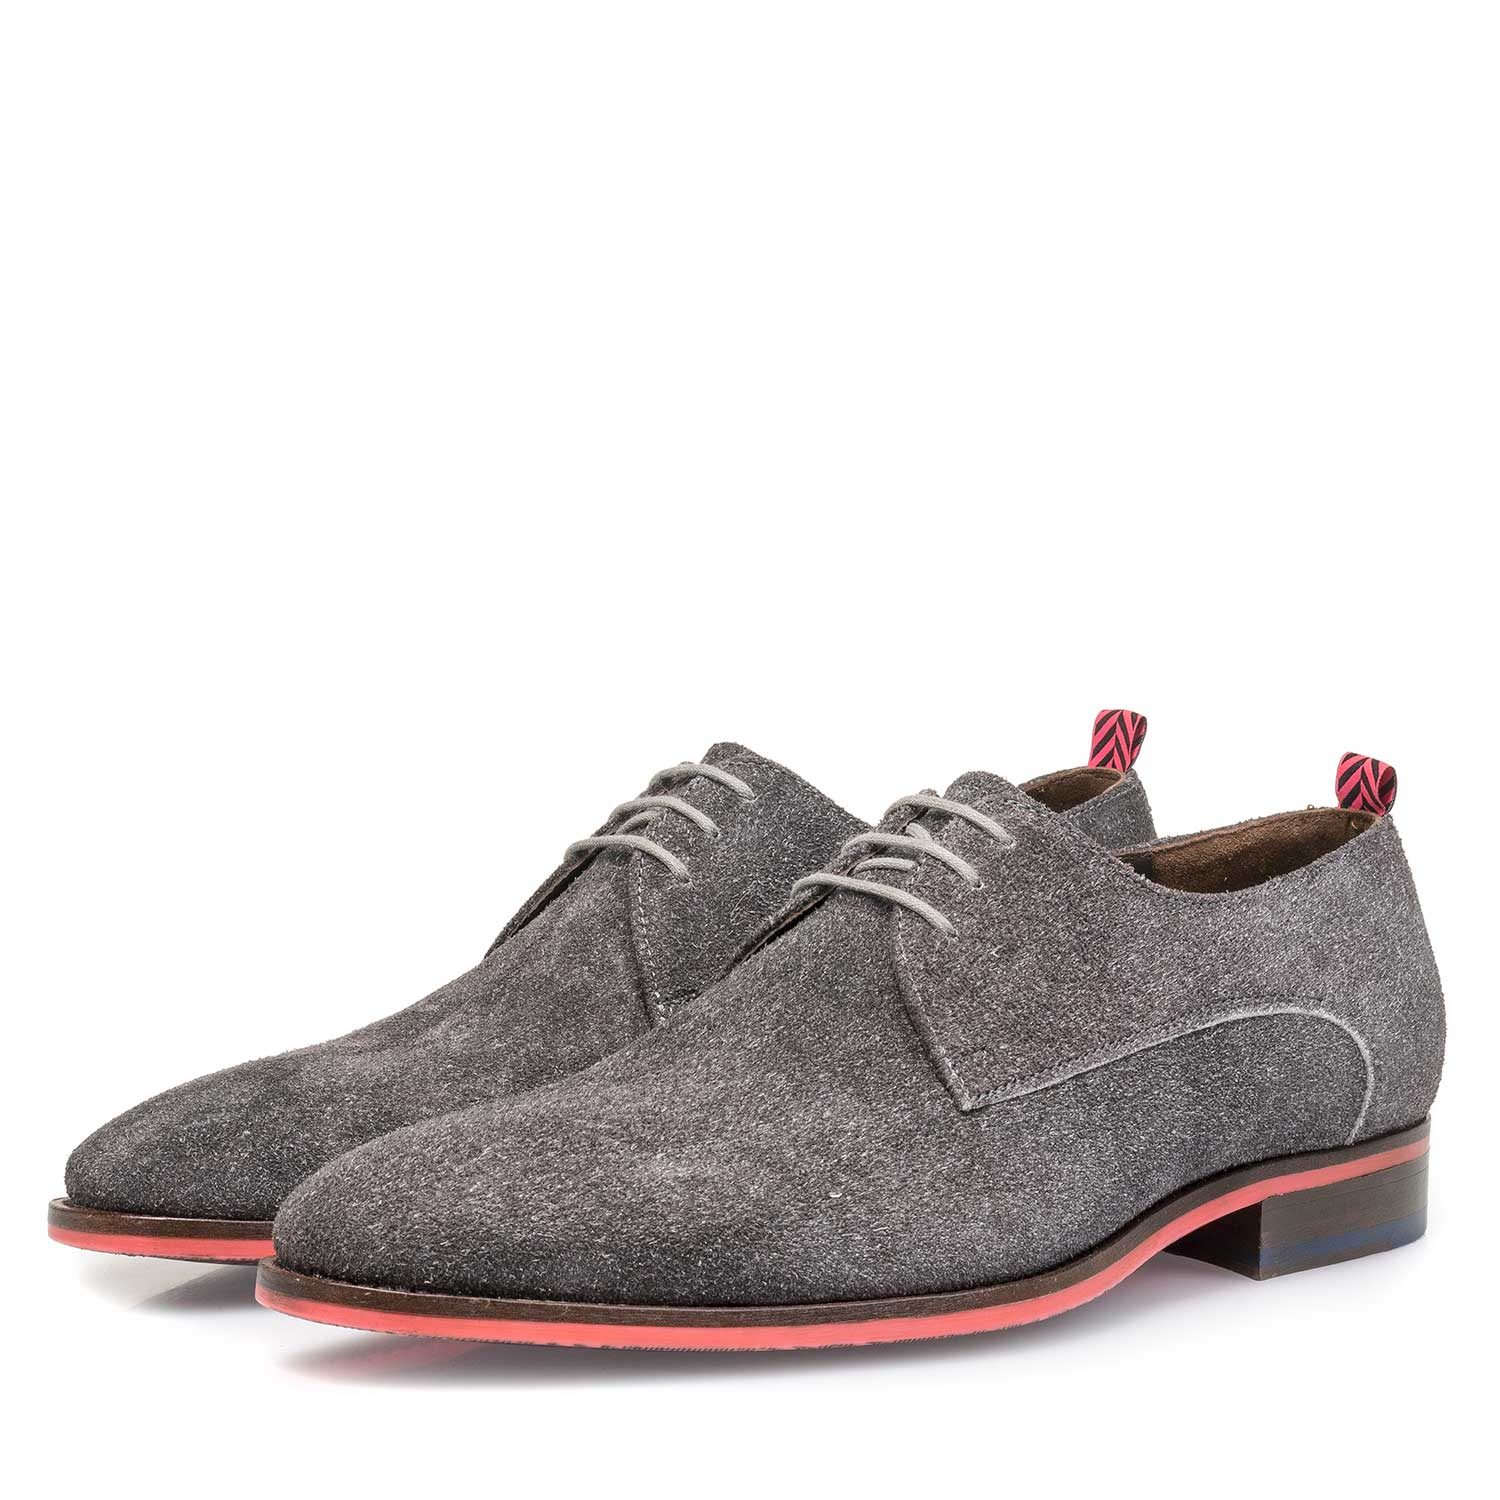 18092/00 - Grey buffed suede leather lace shoe